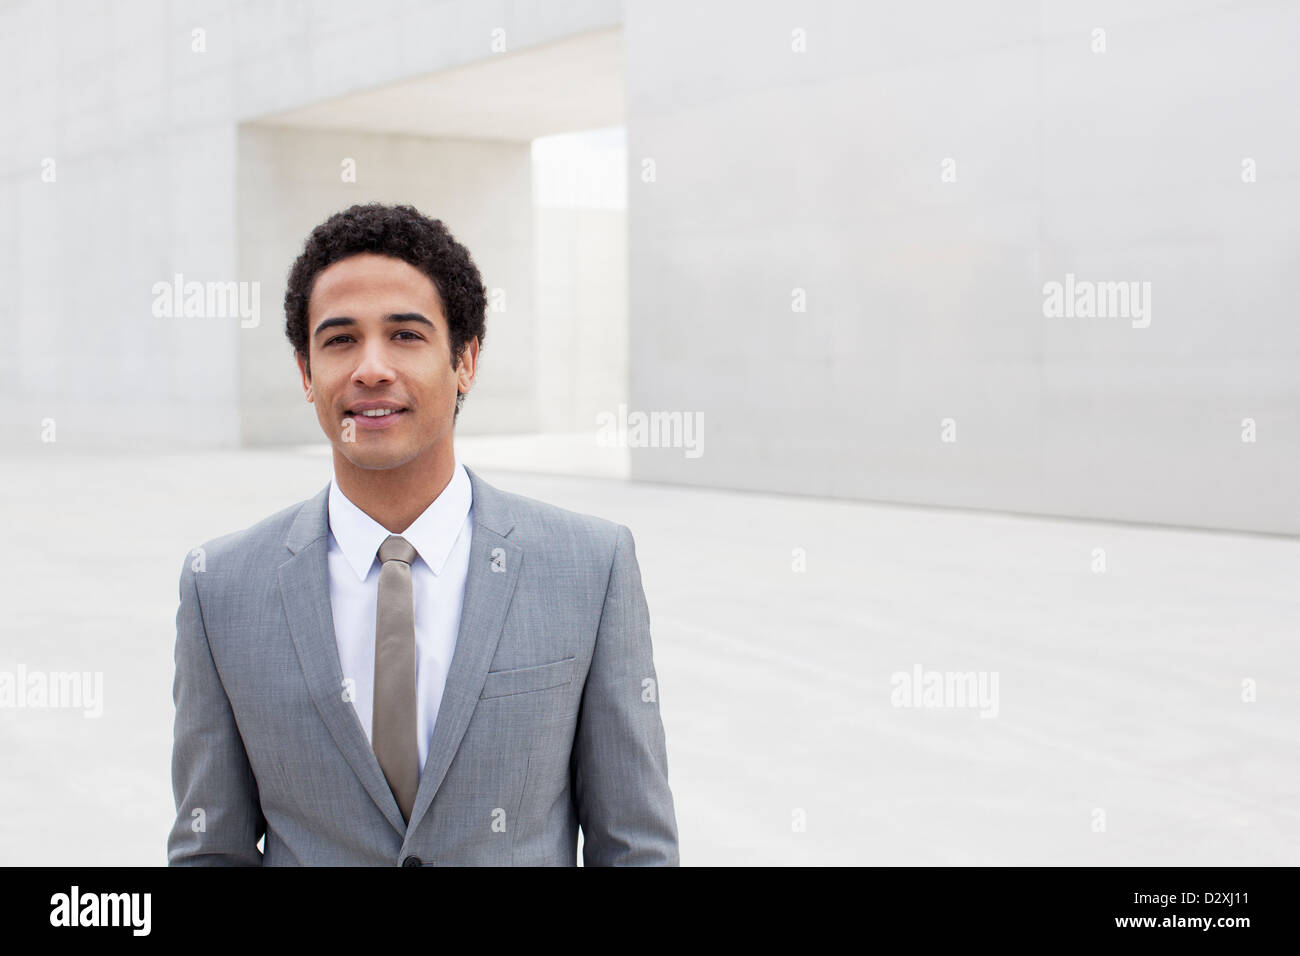 Portrait of smiling businessman standing outside cultural center - Stock Image